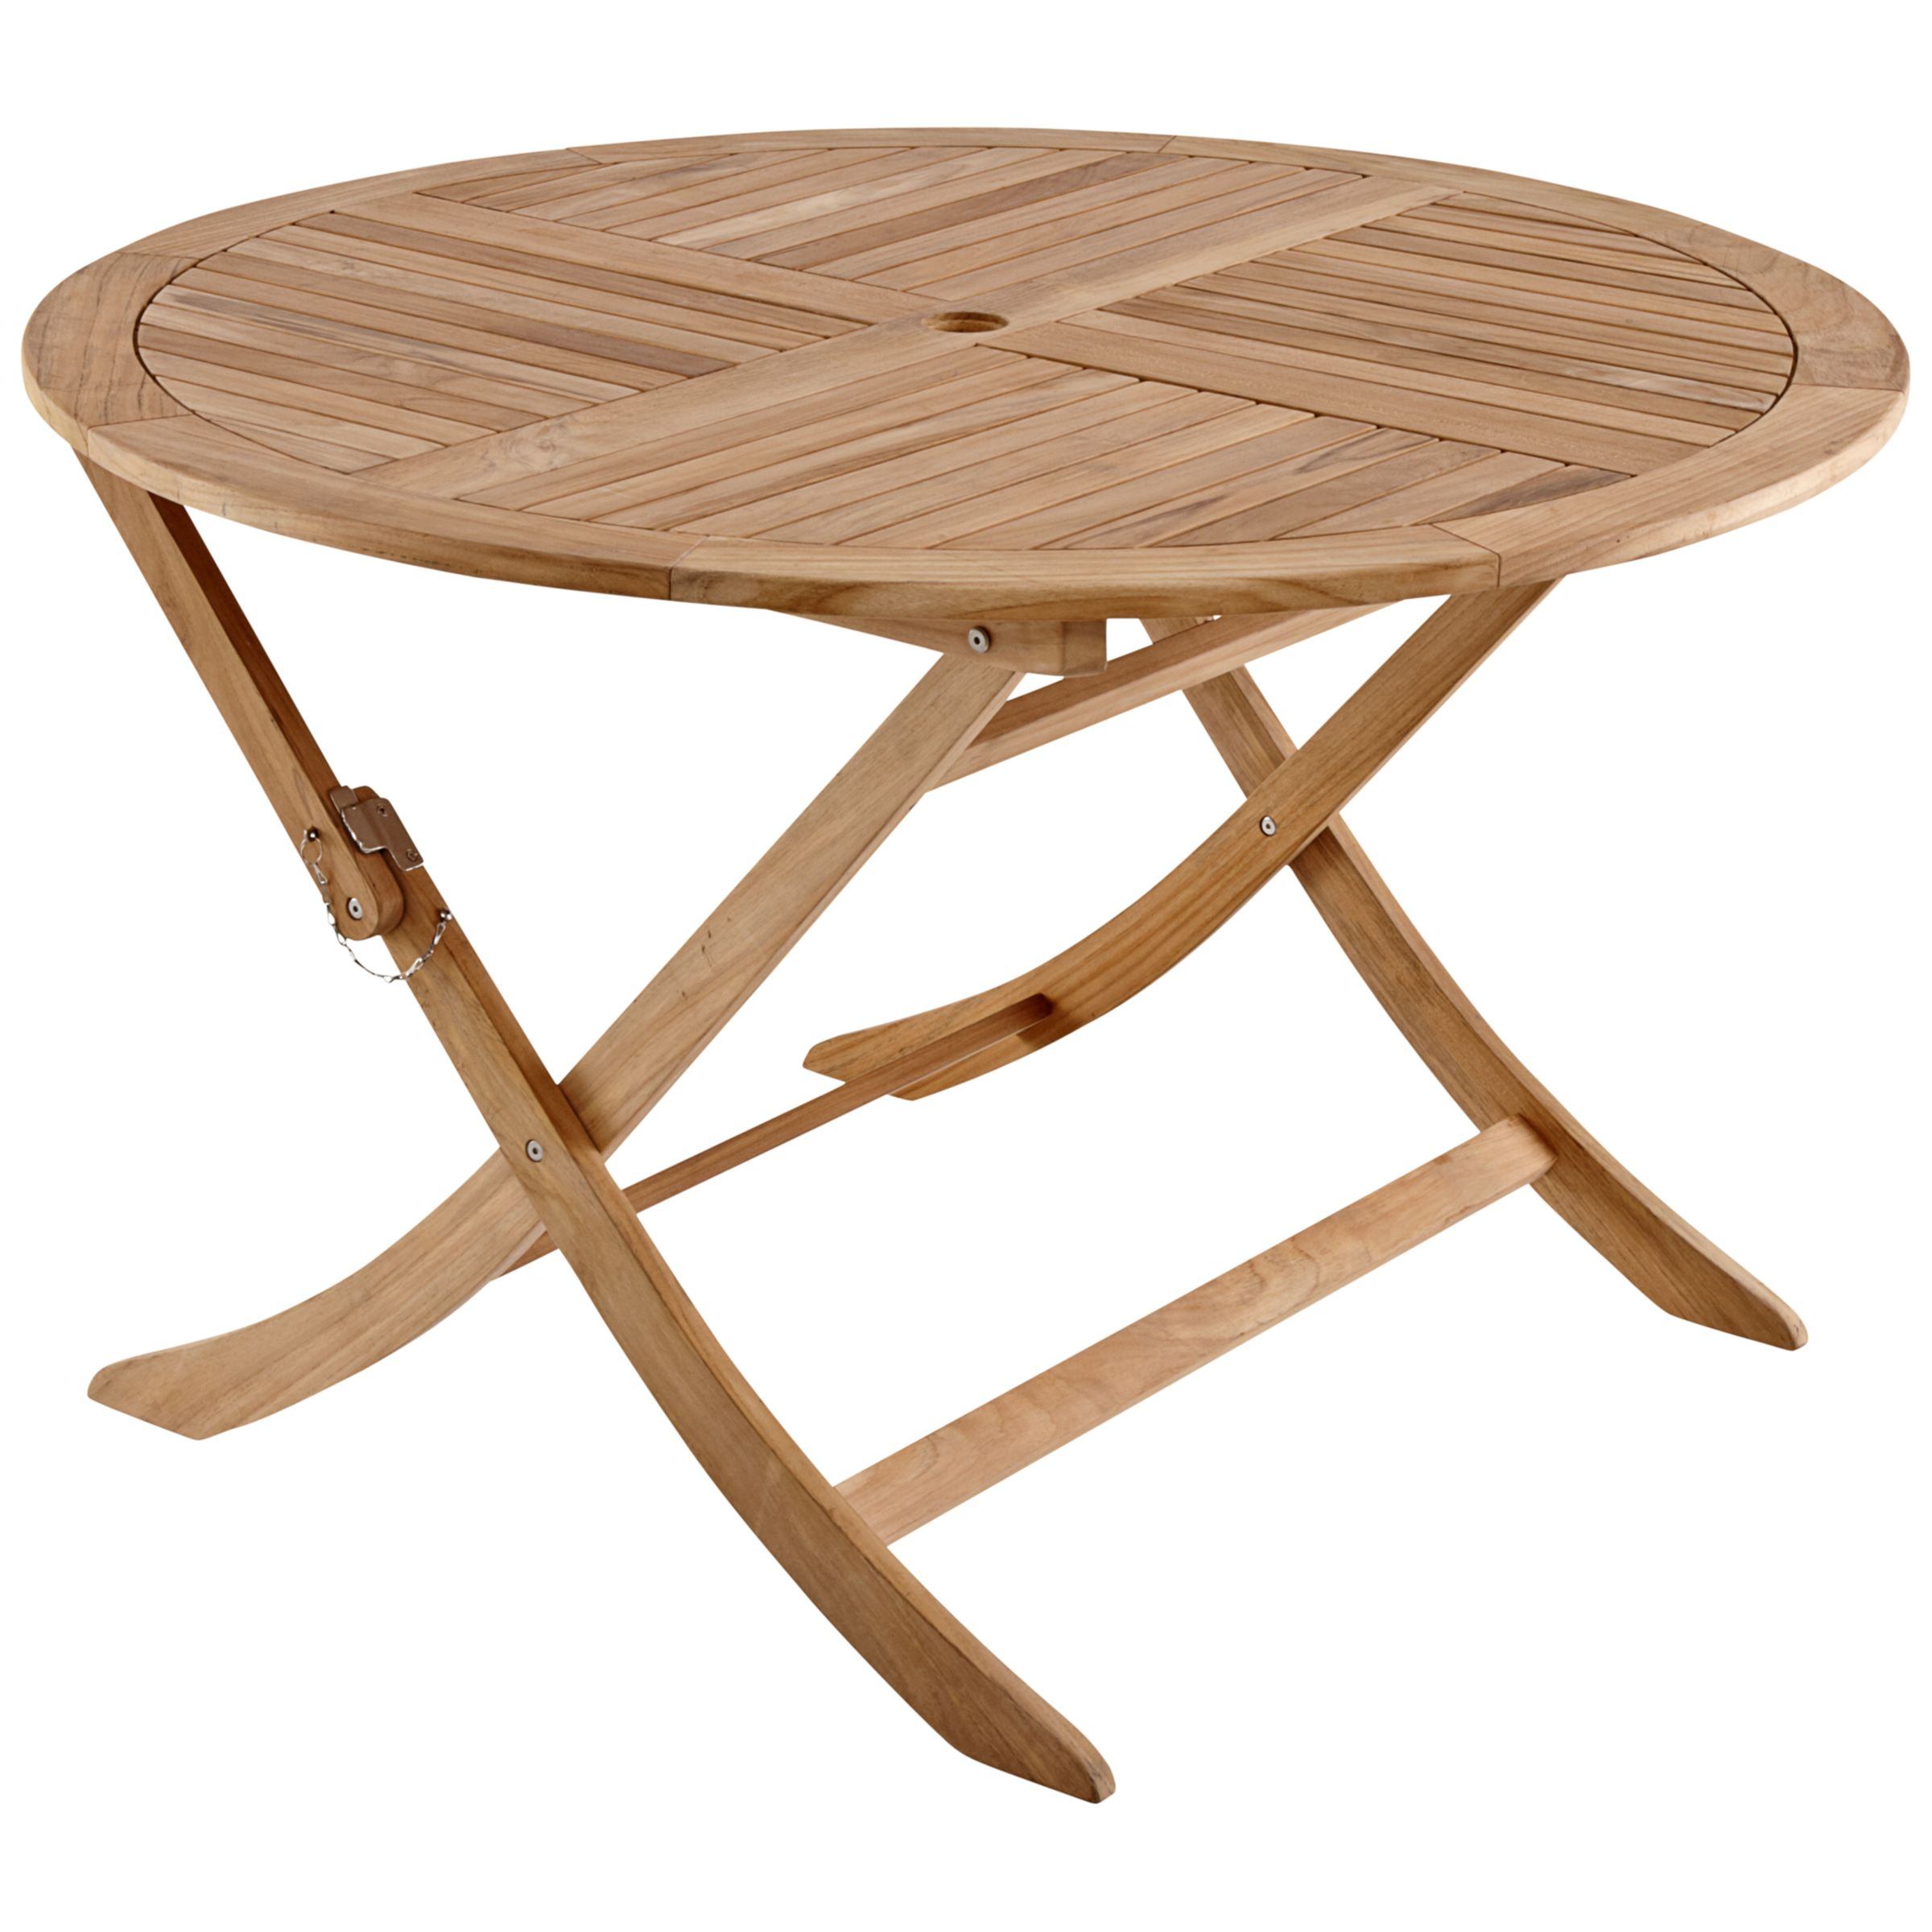 John Lewis Leckford Round 4 Seater Outdoor Dining Table